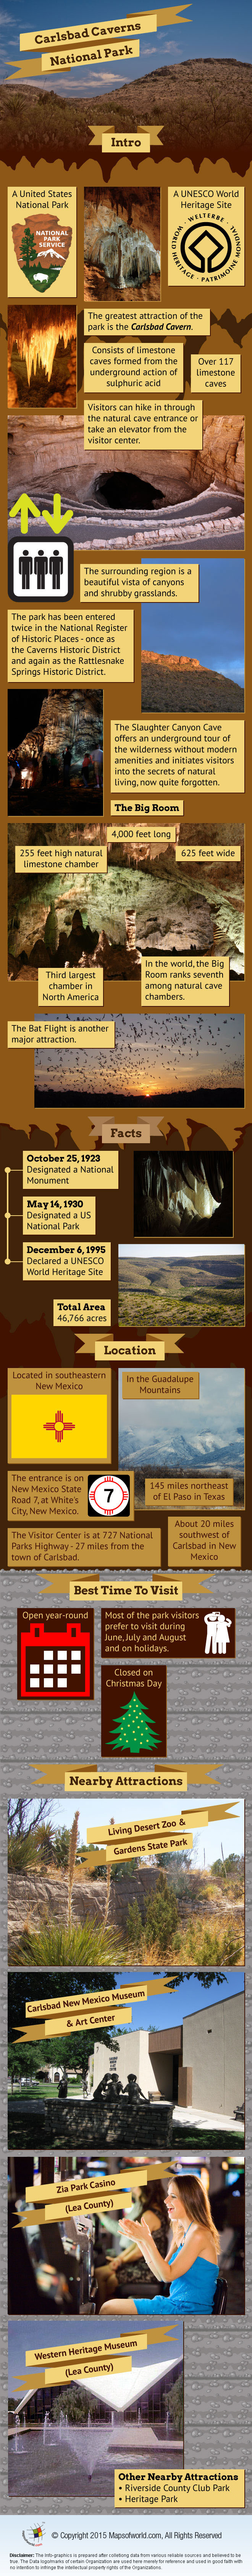 Carlsbad Caverns facts and Infographic